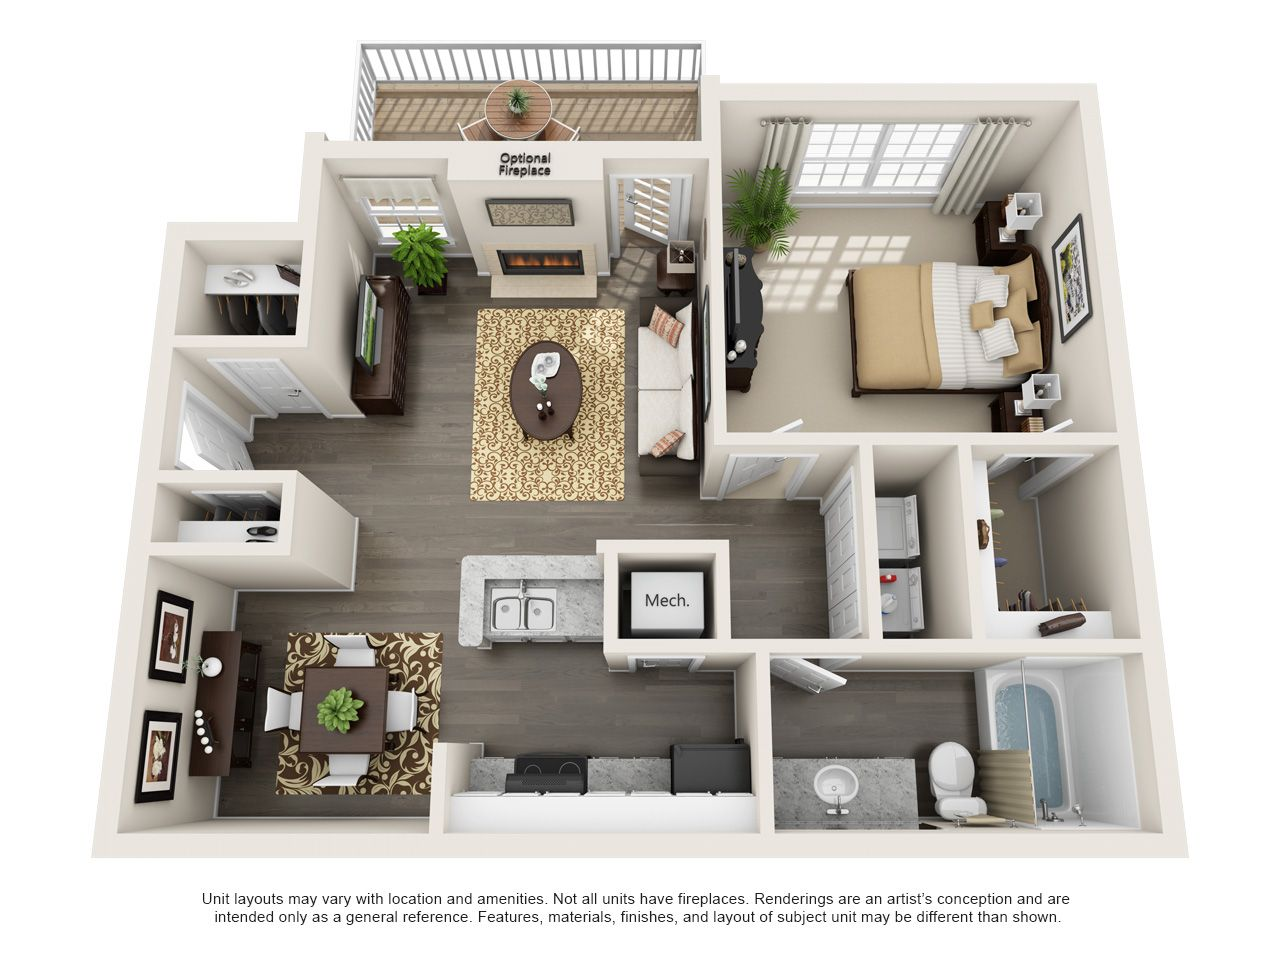 One Two And Three Bedroom Apartments In Mauldin Sc Mauldin Southcarolina Apartment Studio Apartment Floor Plans Apartment Floor Plans Apartment Layout